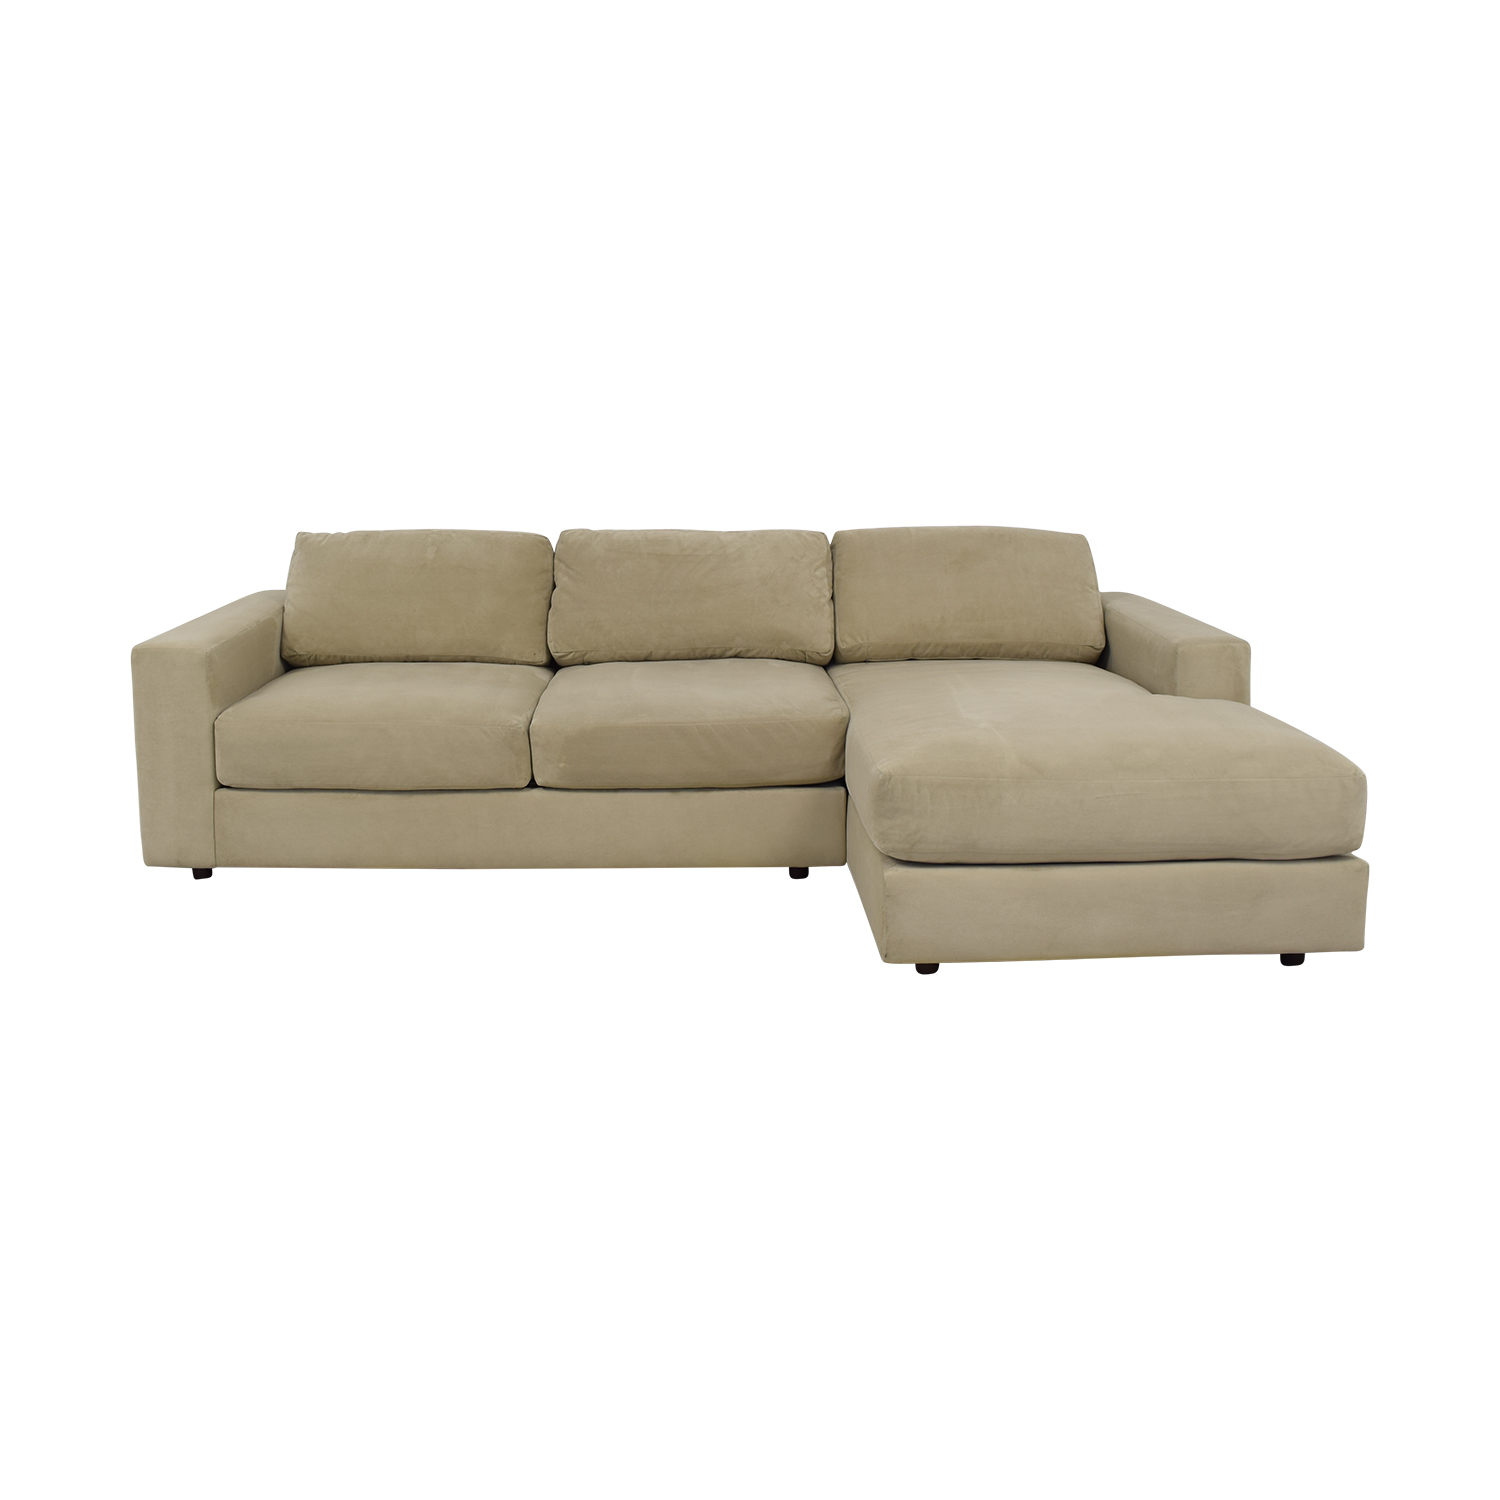 West Elm West Elm Urban Chaise Sectional Sofa dimensions